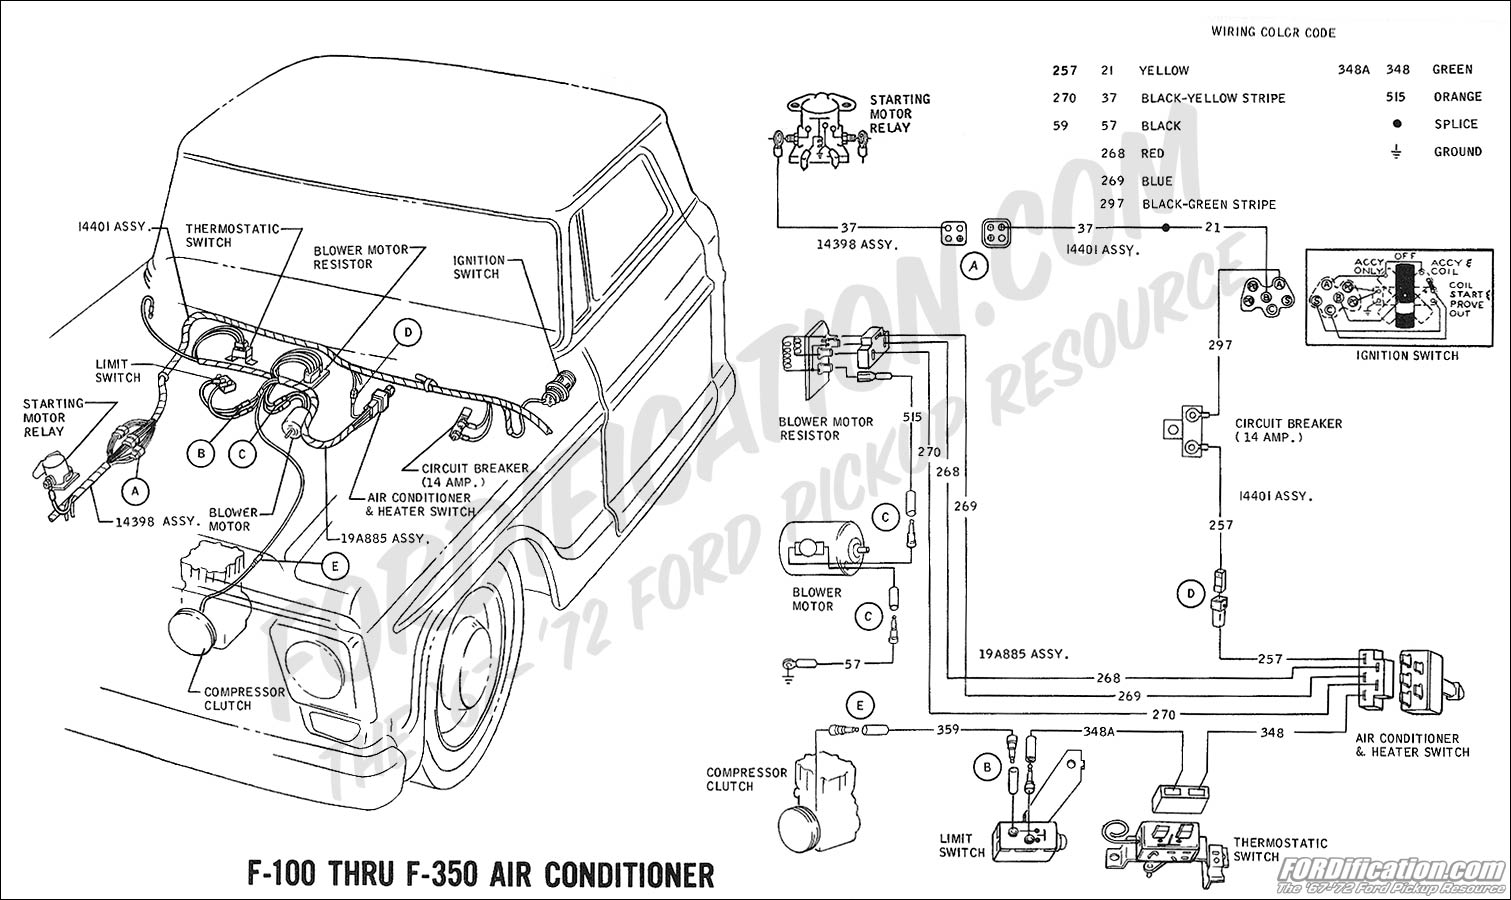 ford truck technical drawings and schematics section h wiring 1969 f 100 thru f 350 air conditioner